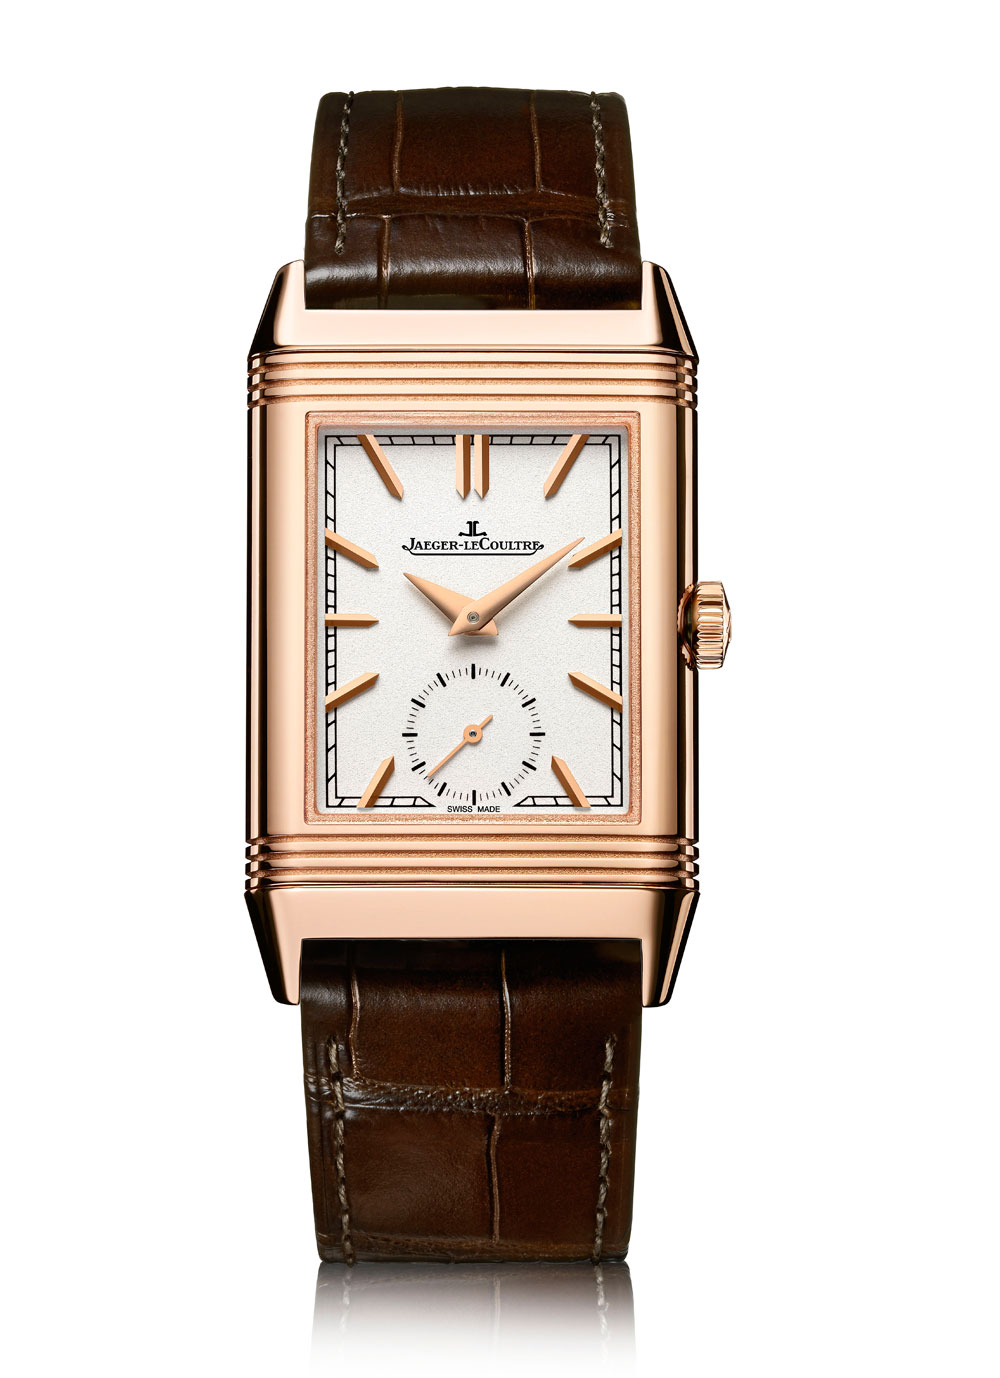 http://www.maquinasdeltiempo.com/wp-content/uploads/2017/10/jaeger-lecoultre-reverso-tribute-duoface-in-pink-gold_back.jpg